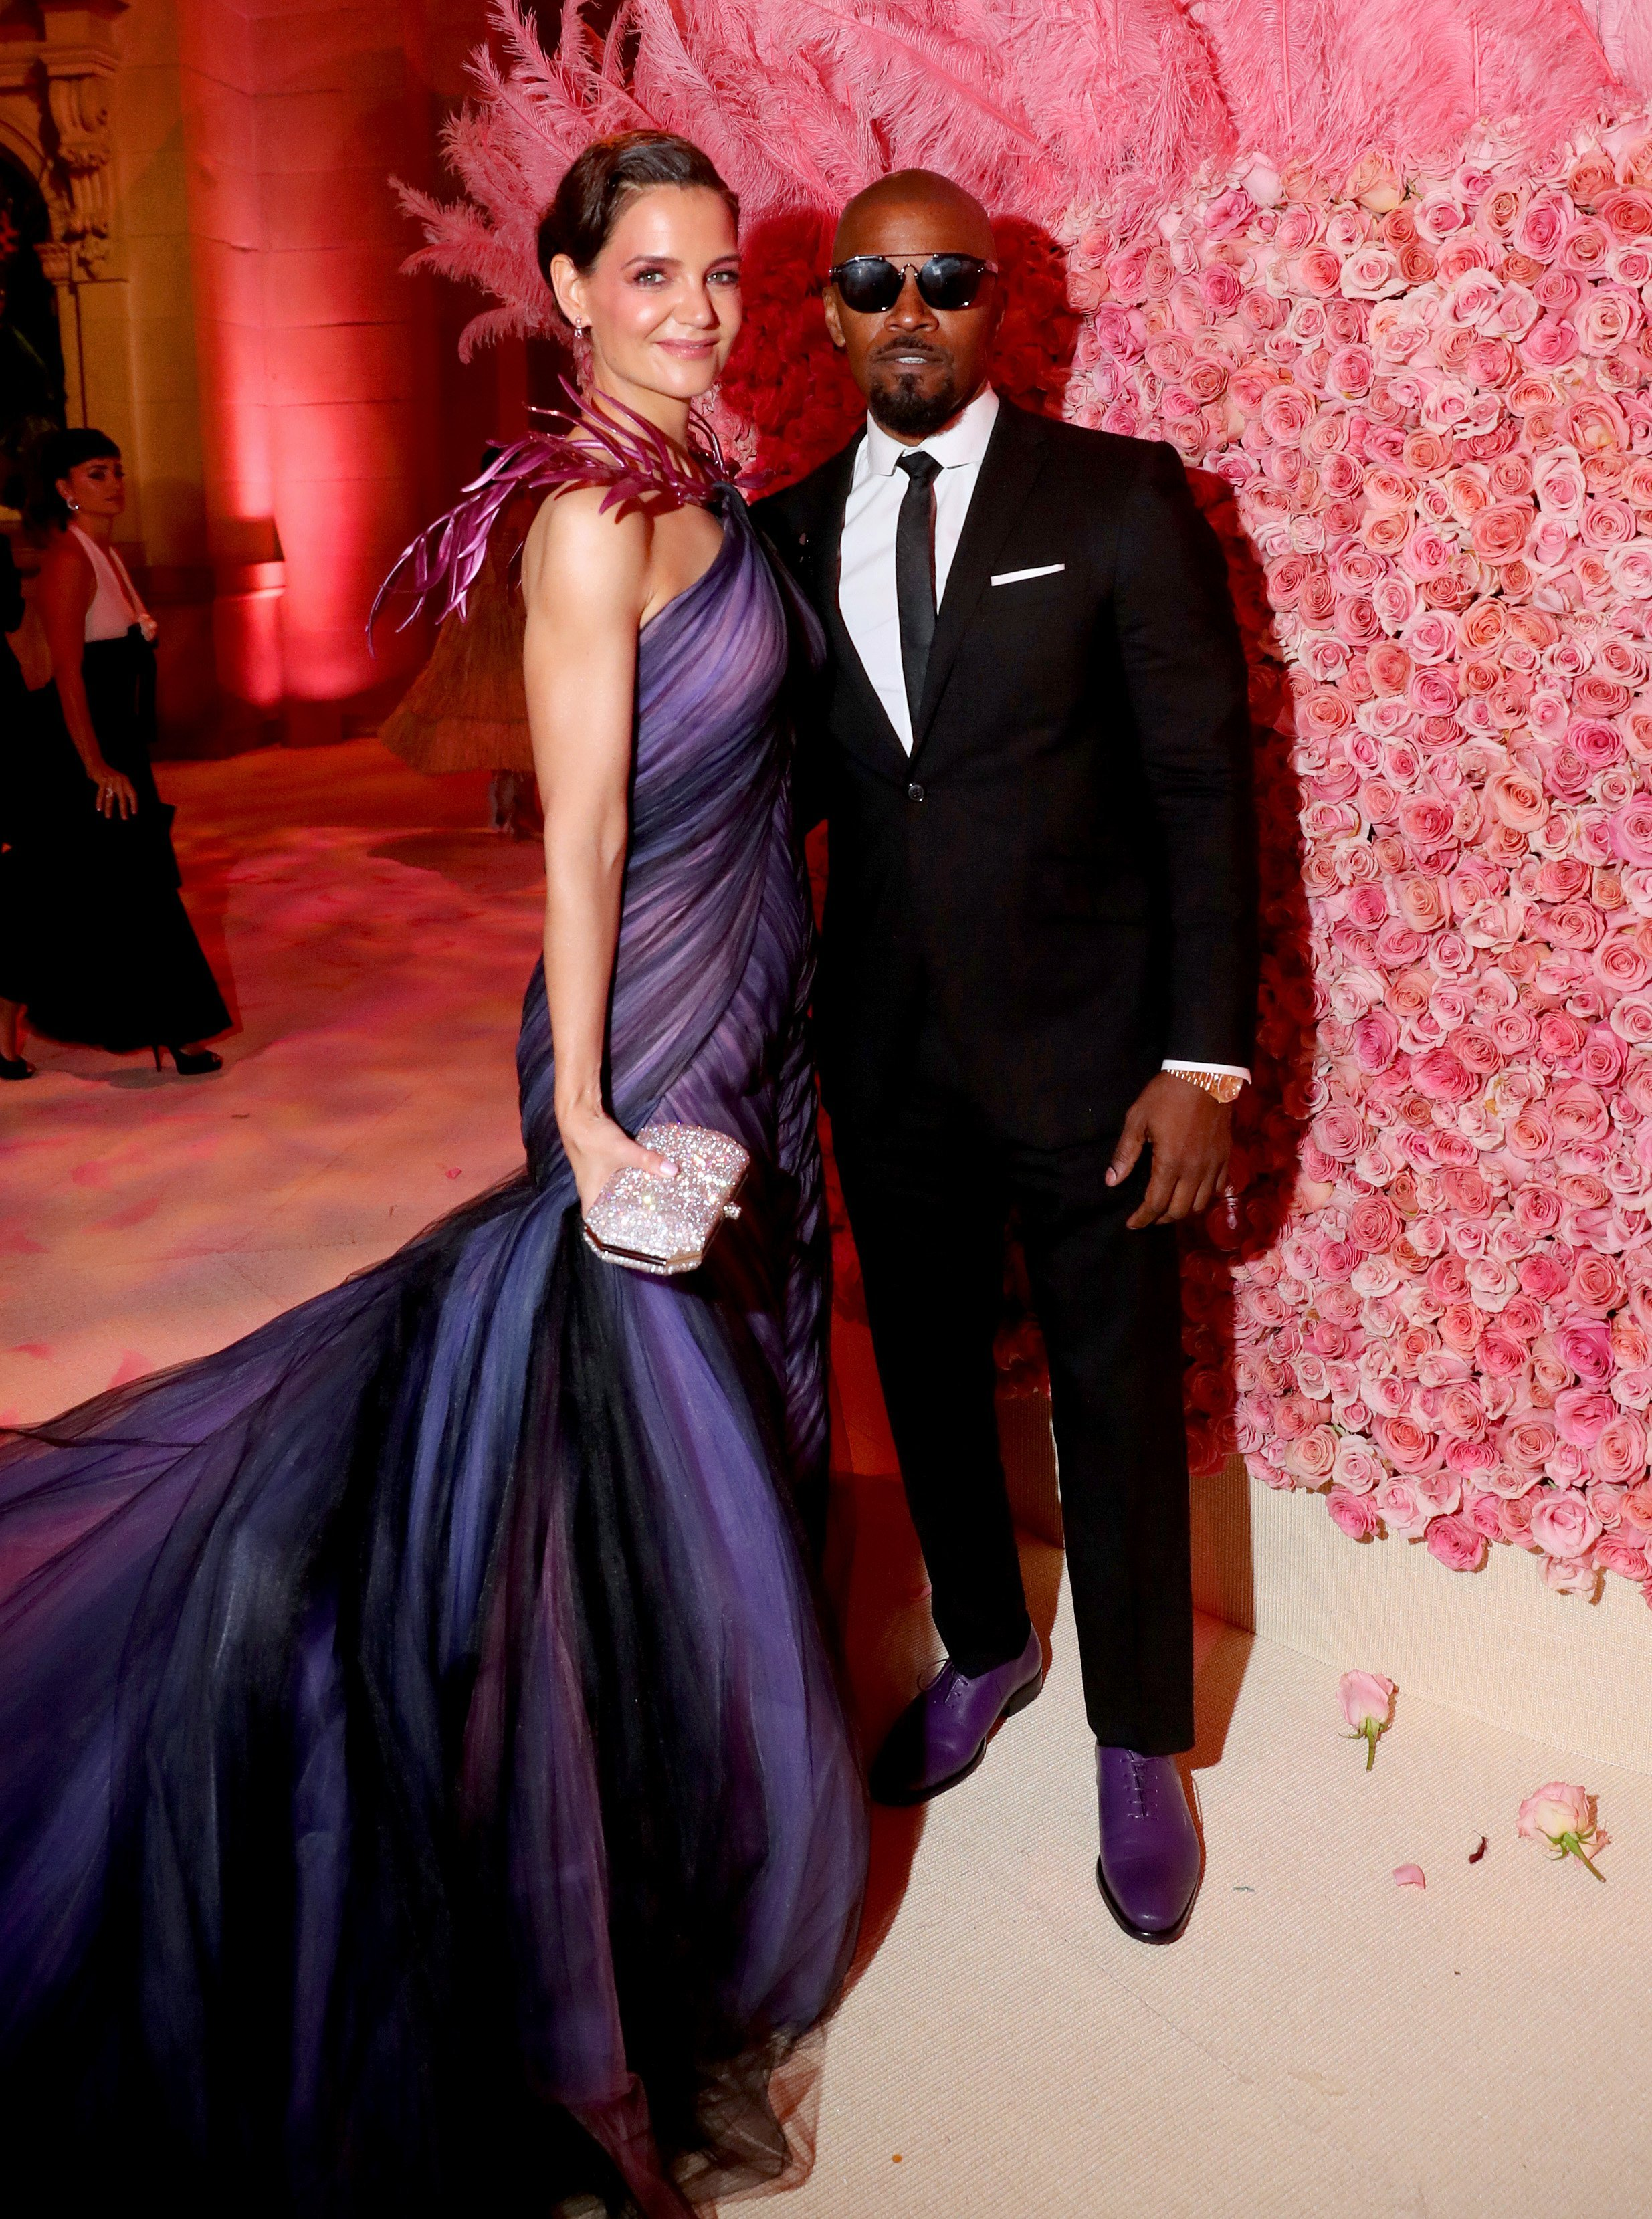 Katie Holmes and Jamie Foxx at the Met Gala. | Source: Getty Images